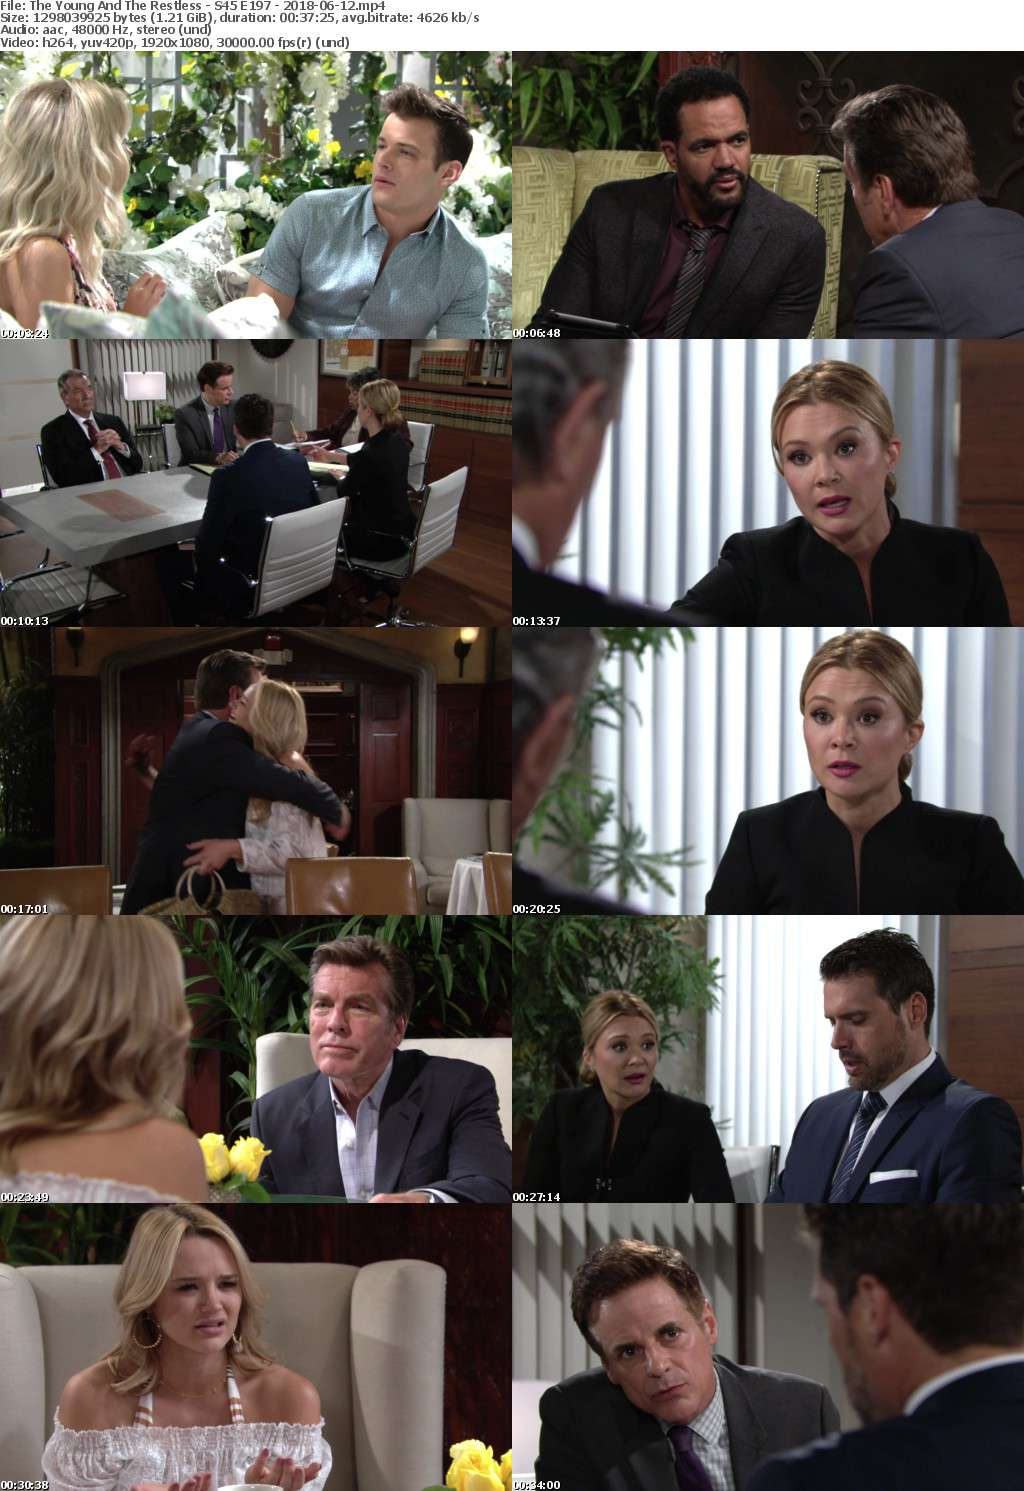 The Young And The Restless - S45 E197 - 2018-06-12